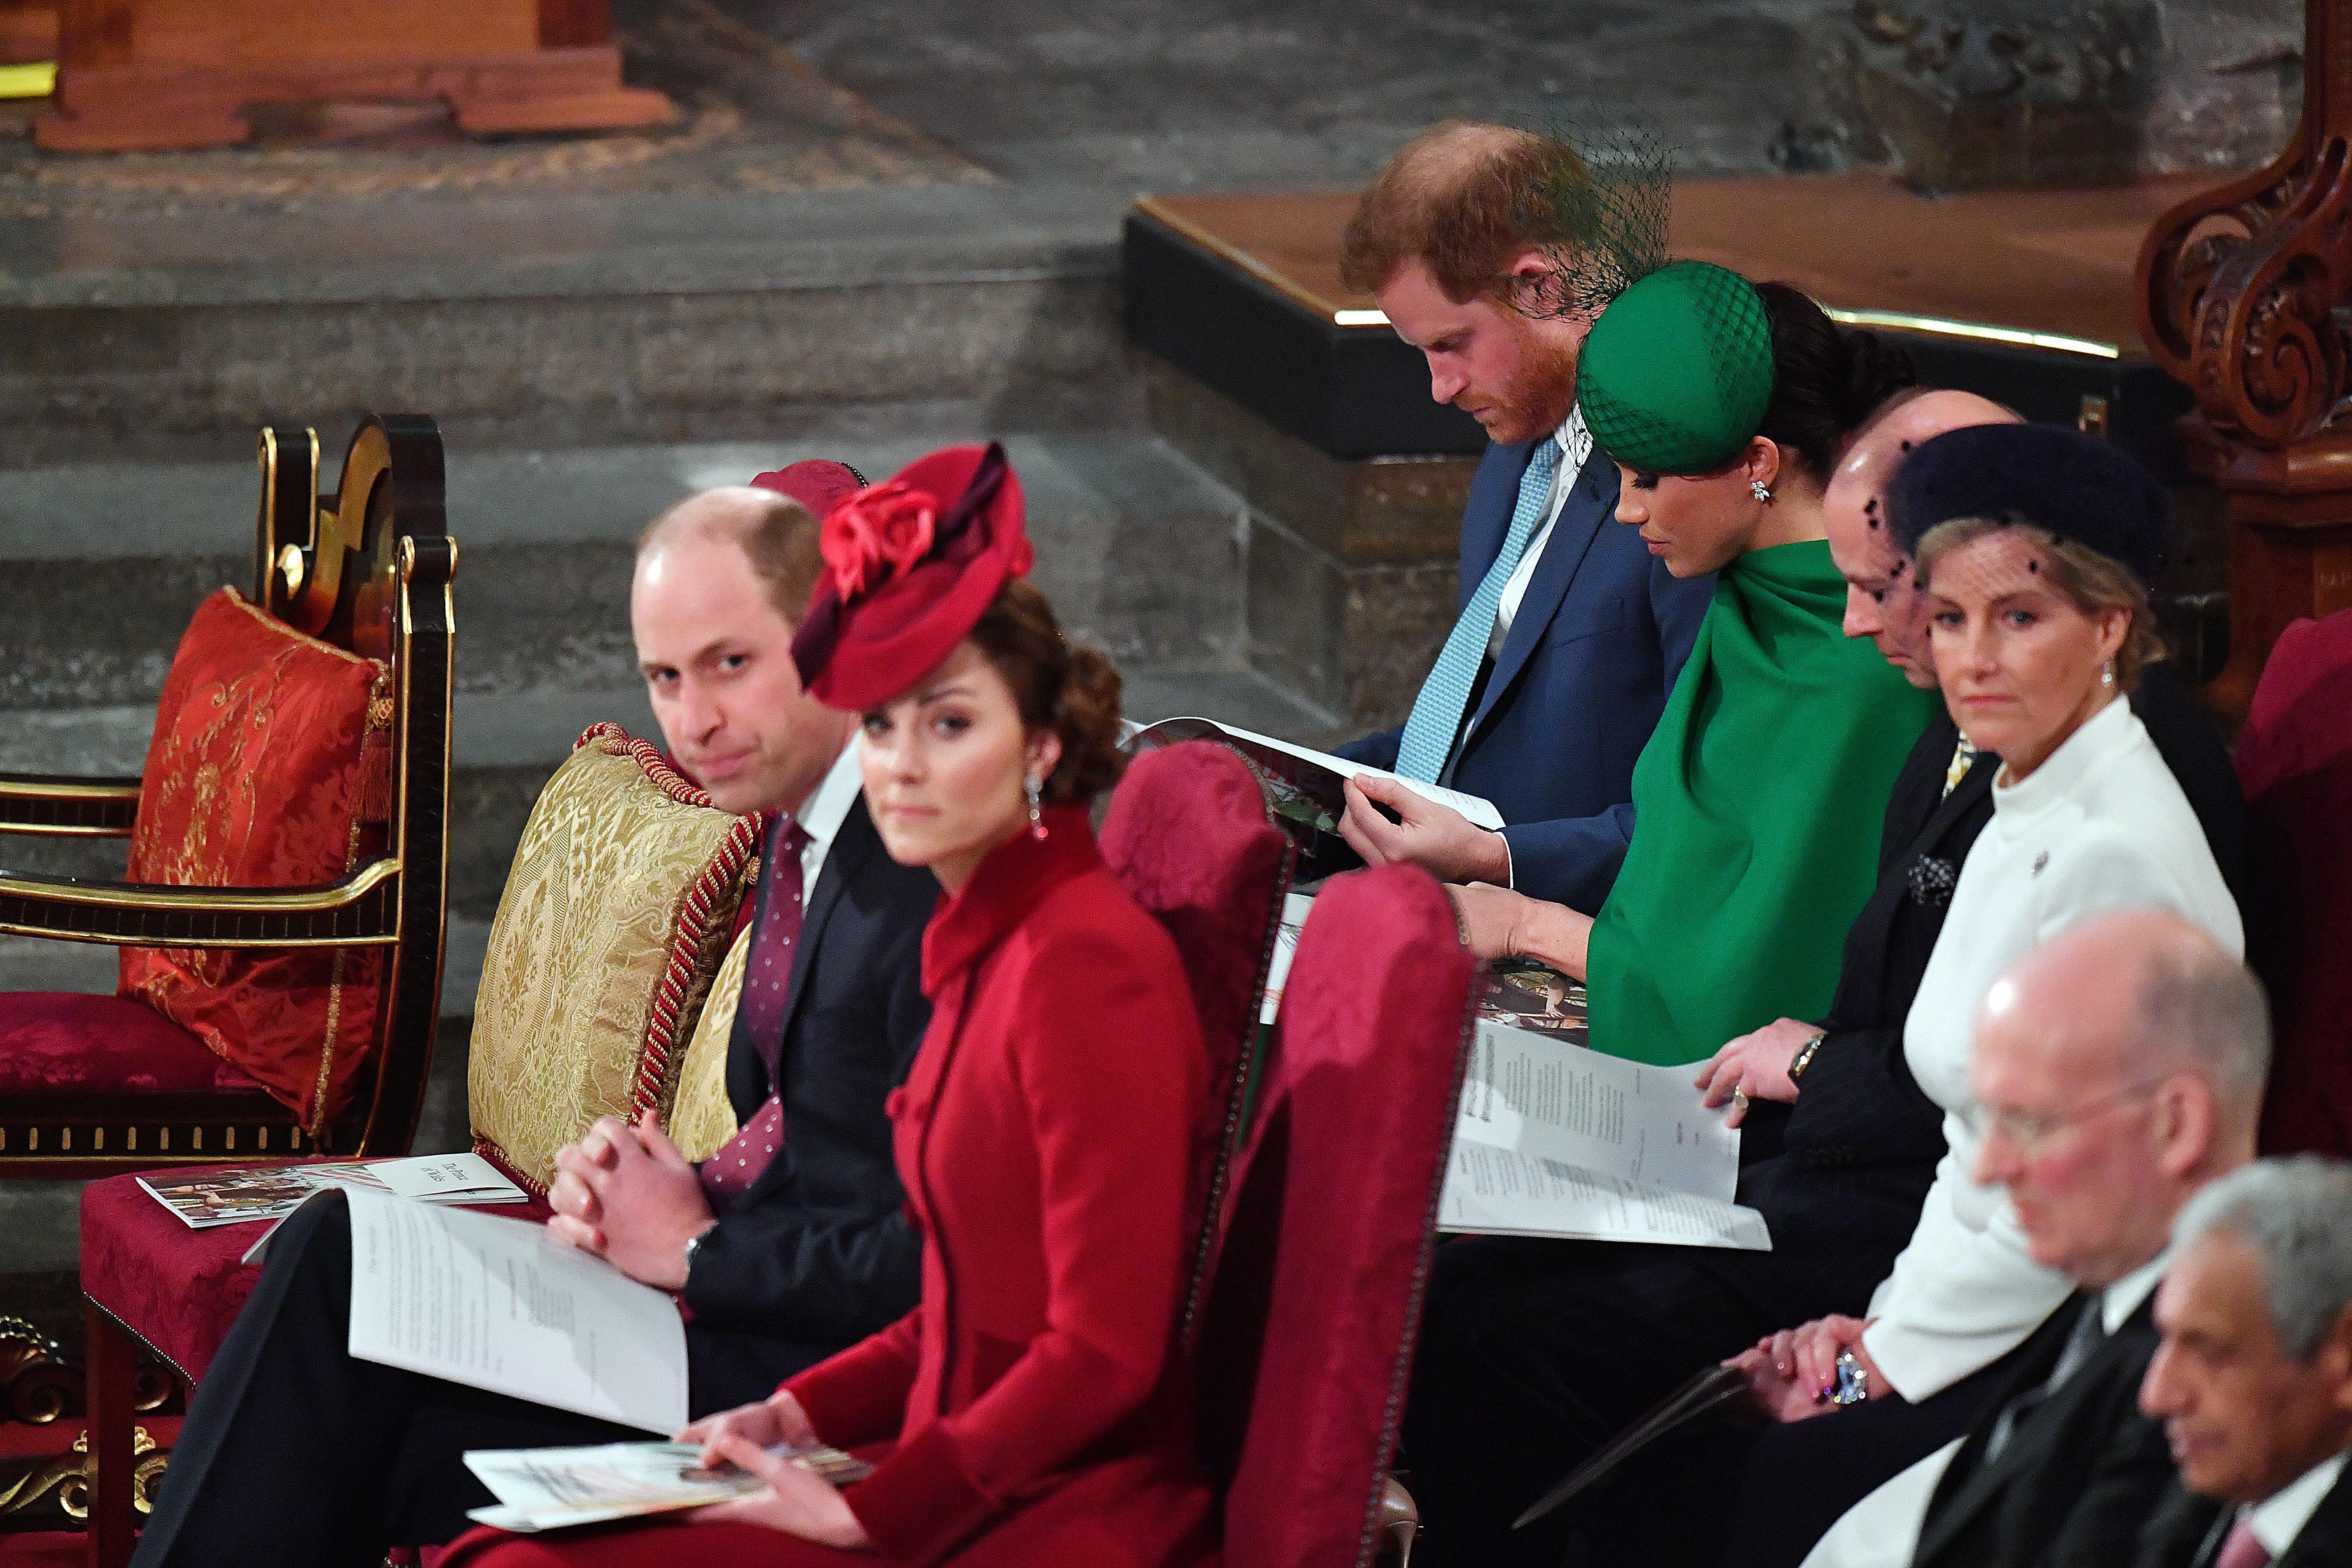 Prince William, Kate Middleton, Prince Harry, Meghan Markle, Prince Edward, Earl of Wessex and Sophie, Countess of Wessex attend the Commonwealth Day Service 2020 on March 9, 2020 in London, England | Photo: Getty Images